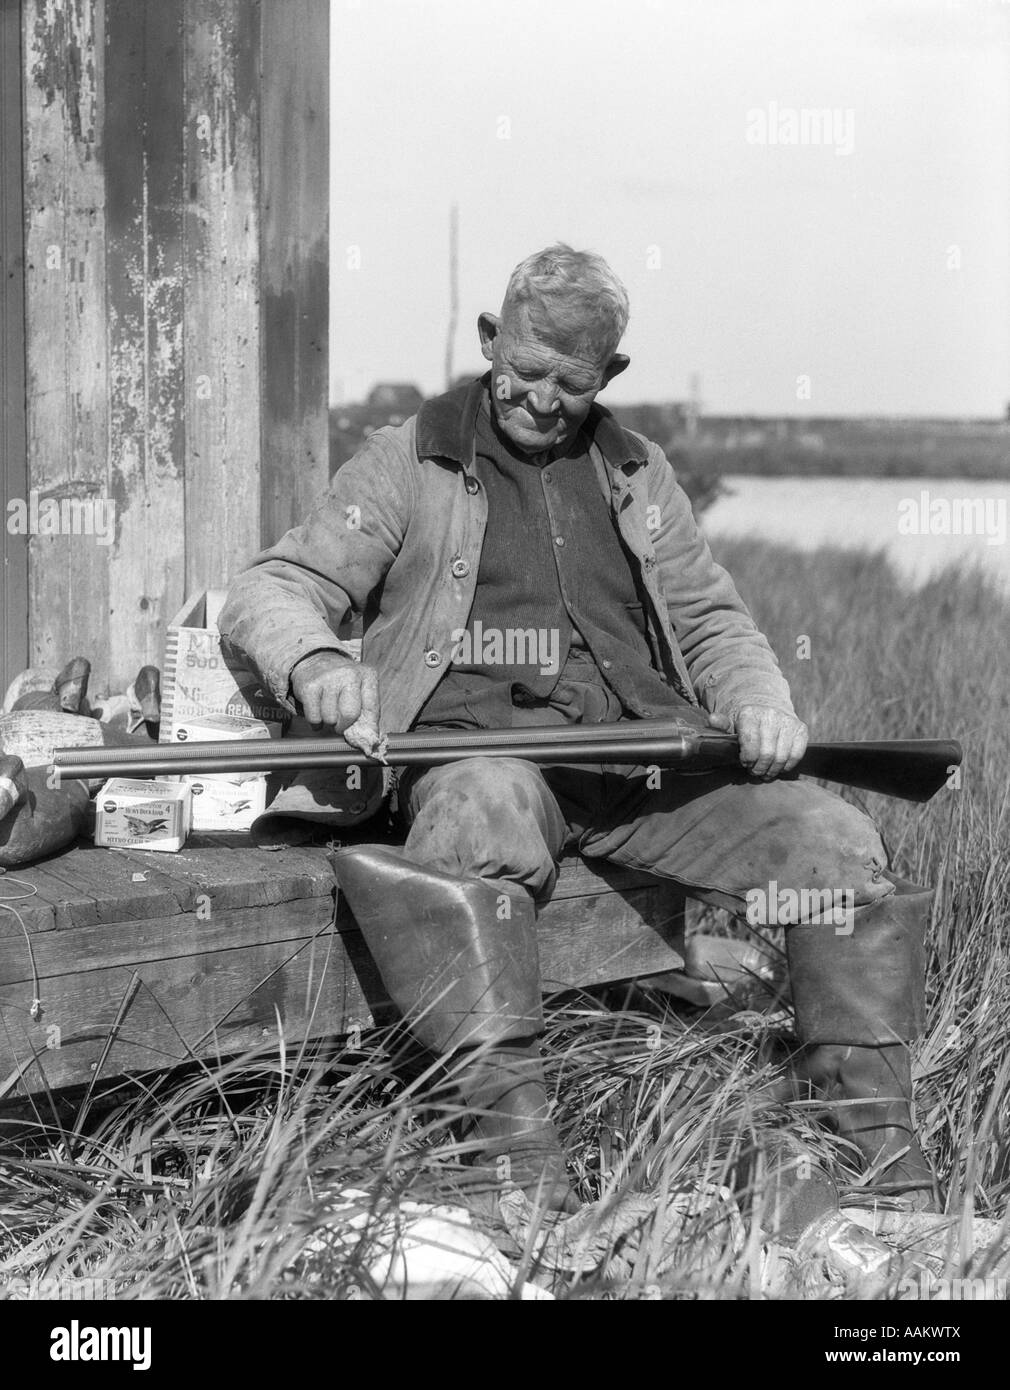 1920s 1930s senior man sitting on bench cleaning duck